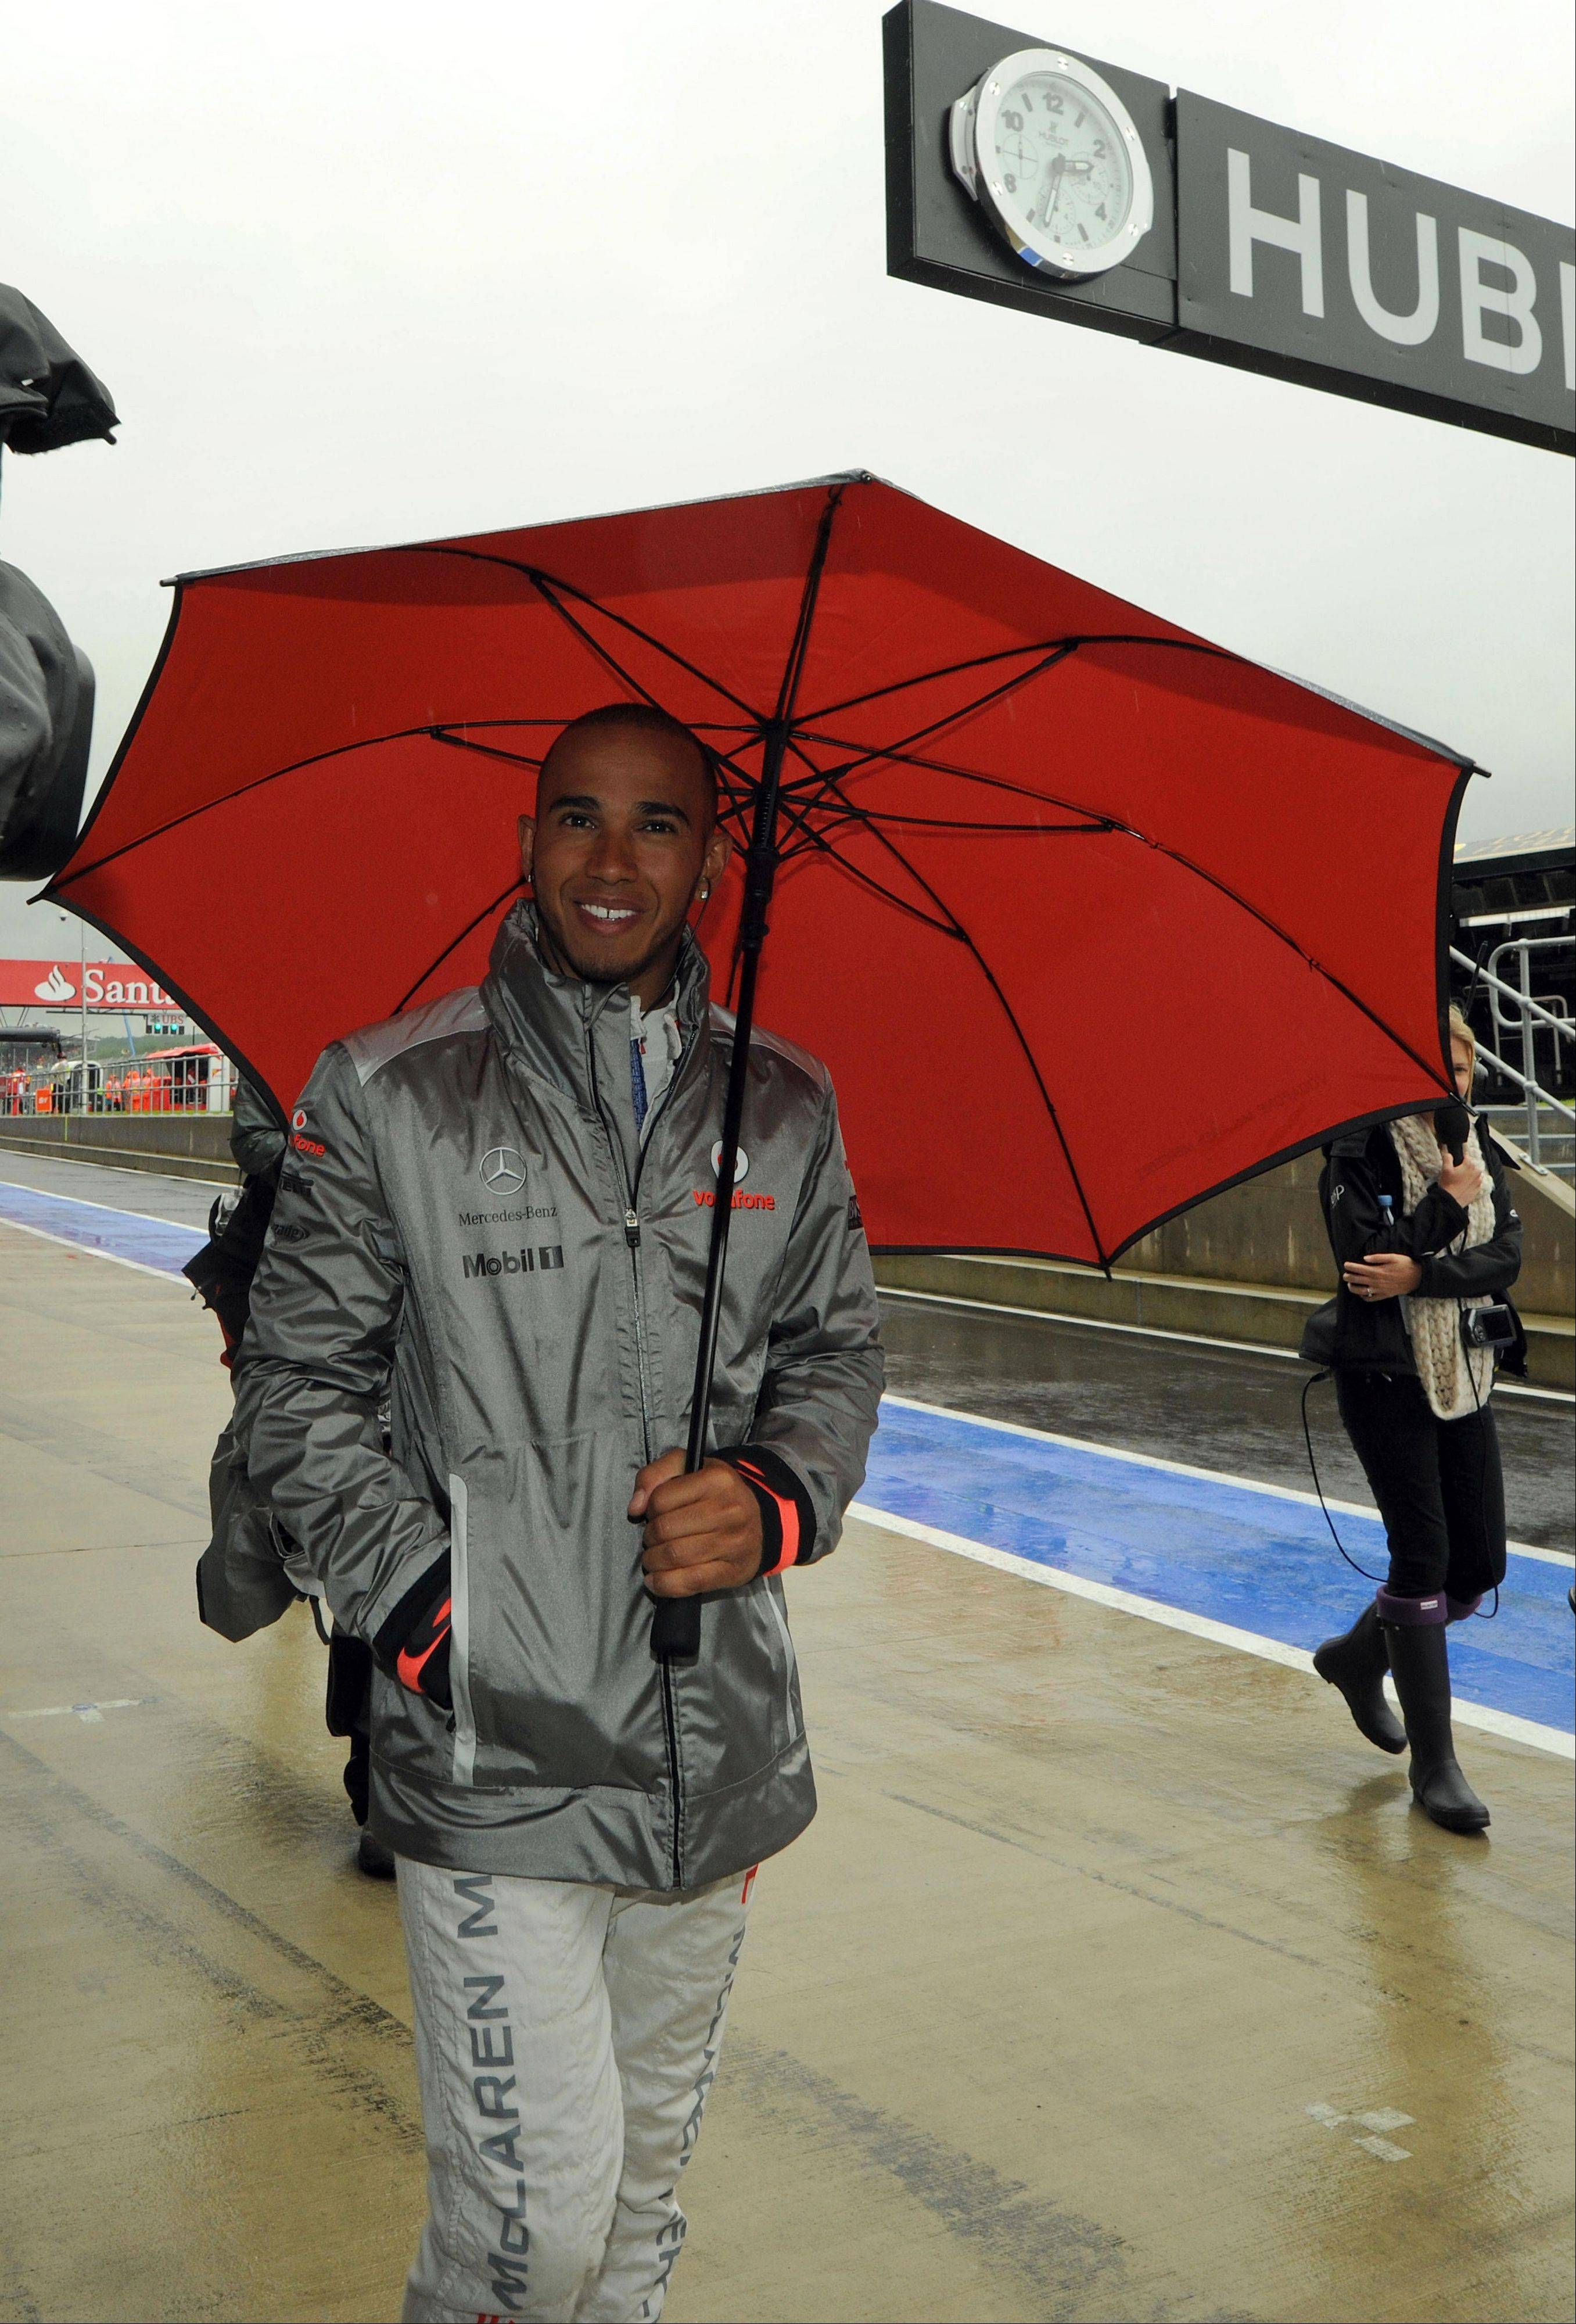 Britain's Lewis Hamilton, a McLaren-Mercedes Formula 1 car driver, smiles as he walks along pit lane Friday during practice at the Silverstone circuit, England.